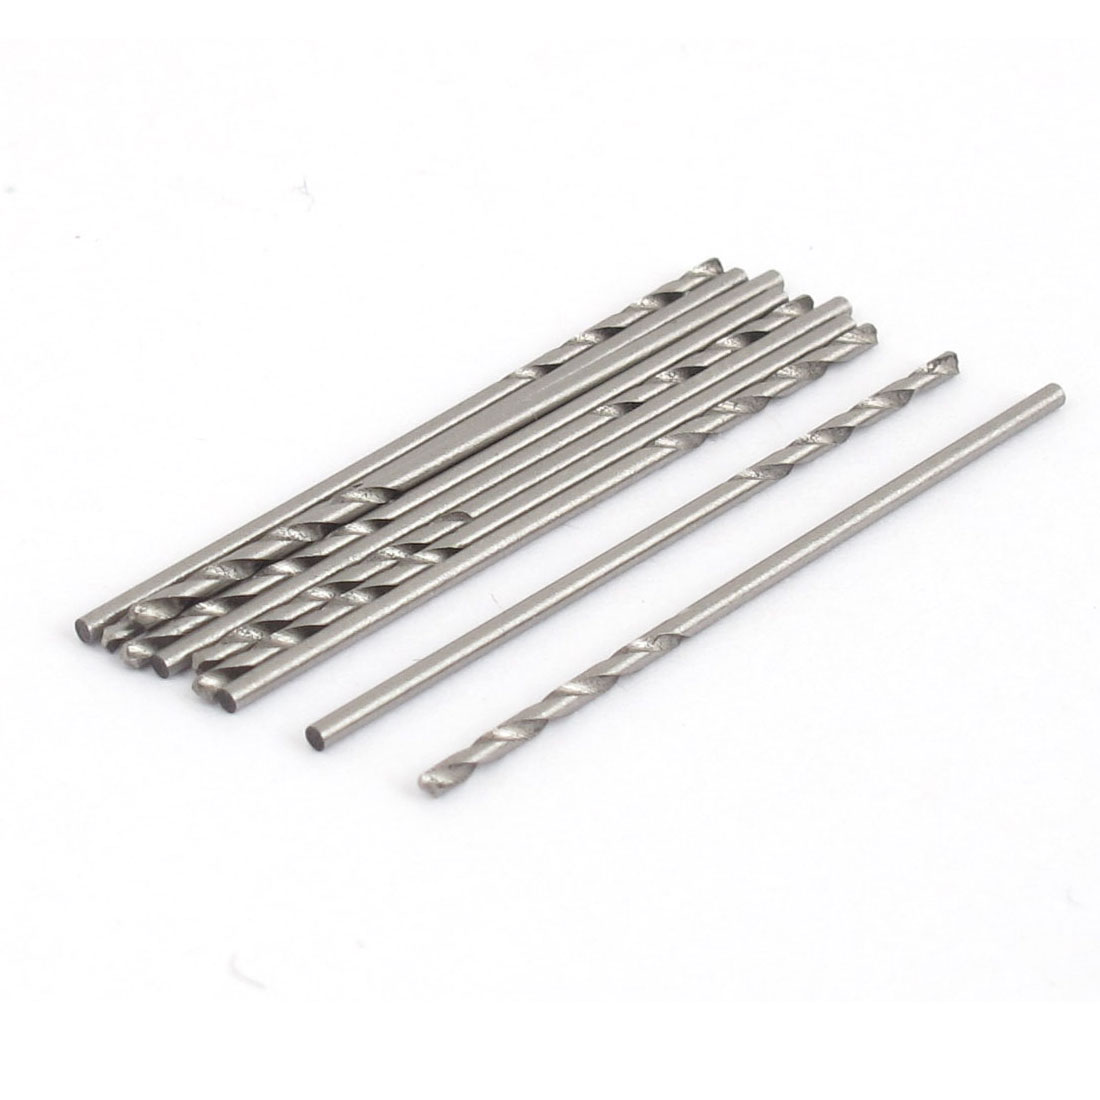 10 Pcs 1mm x 34mm HSS Straight Shank Twist Drilling Bits for Electrical Drill